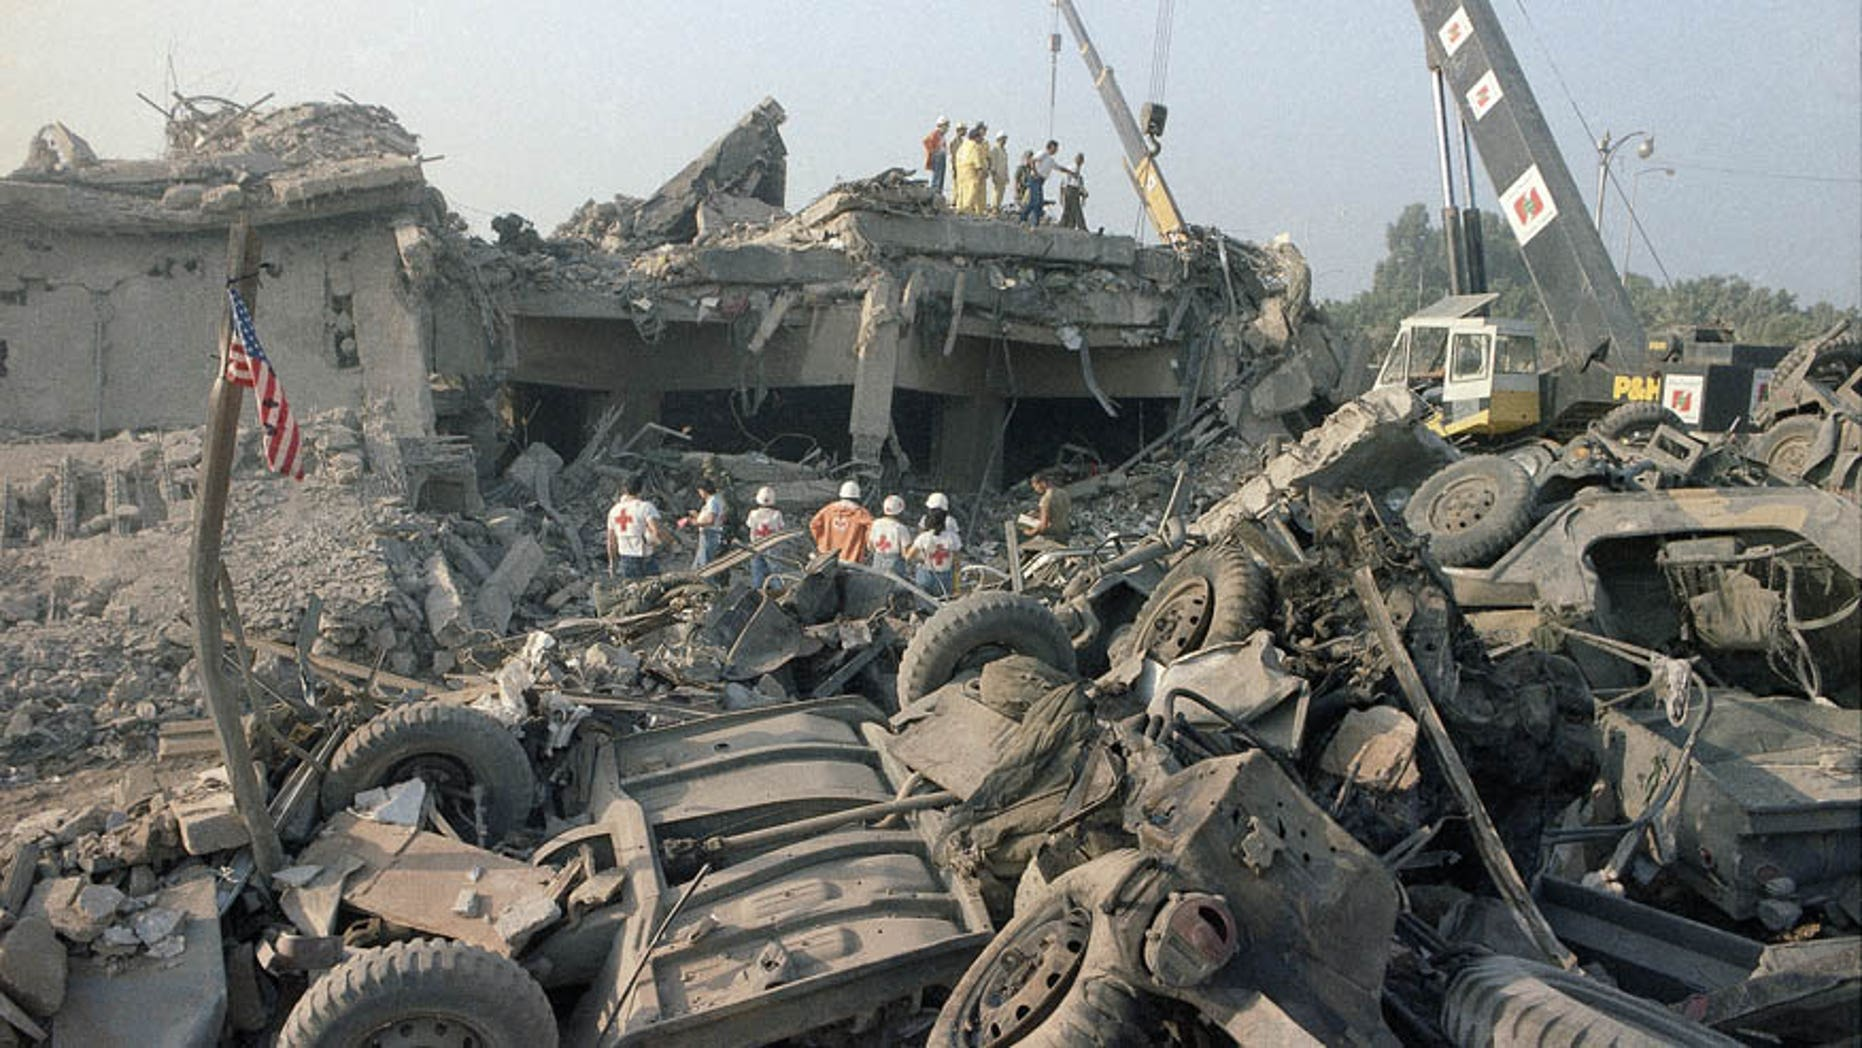 In this Oct. 23, 1983 file photo, the aftermath of the bombing of the U.S. Marines barracks in Beirut, Lebanon.